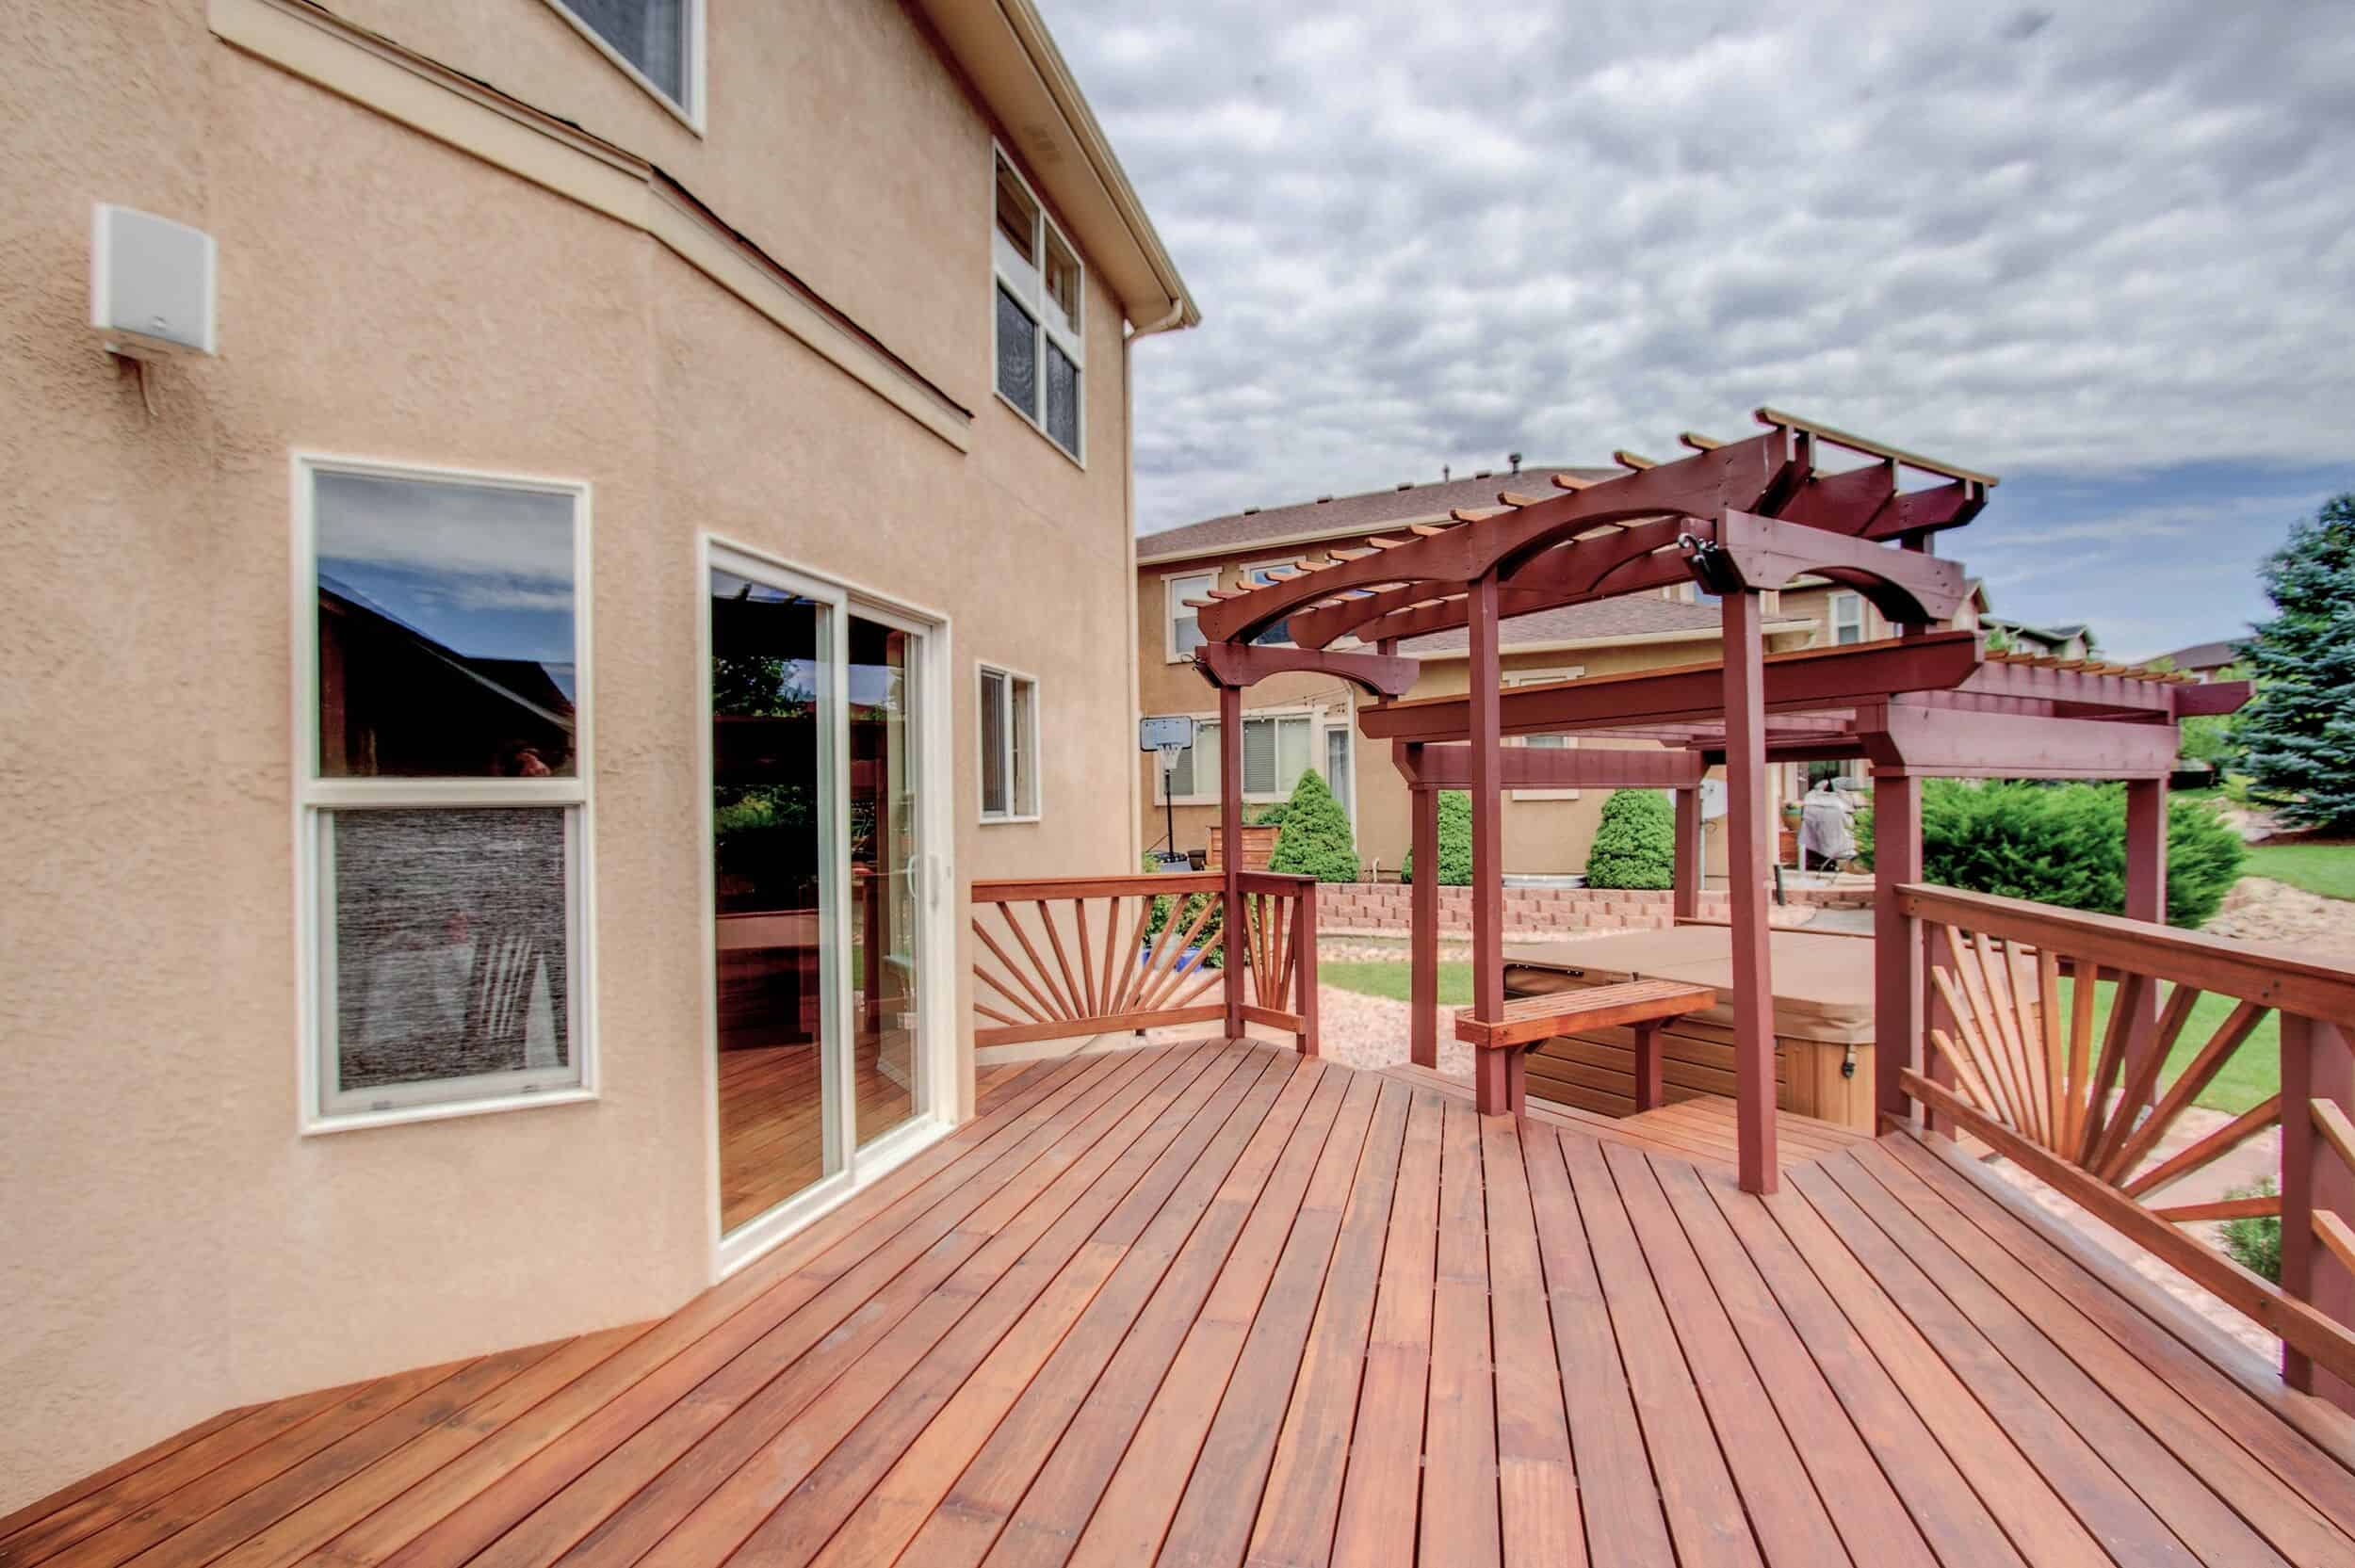 Custom Built Deck with Pergola and Hot Tub